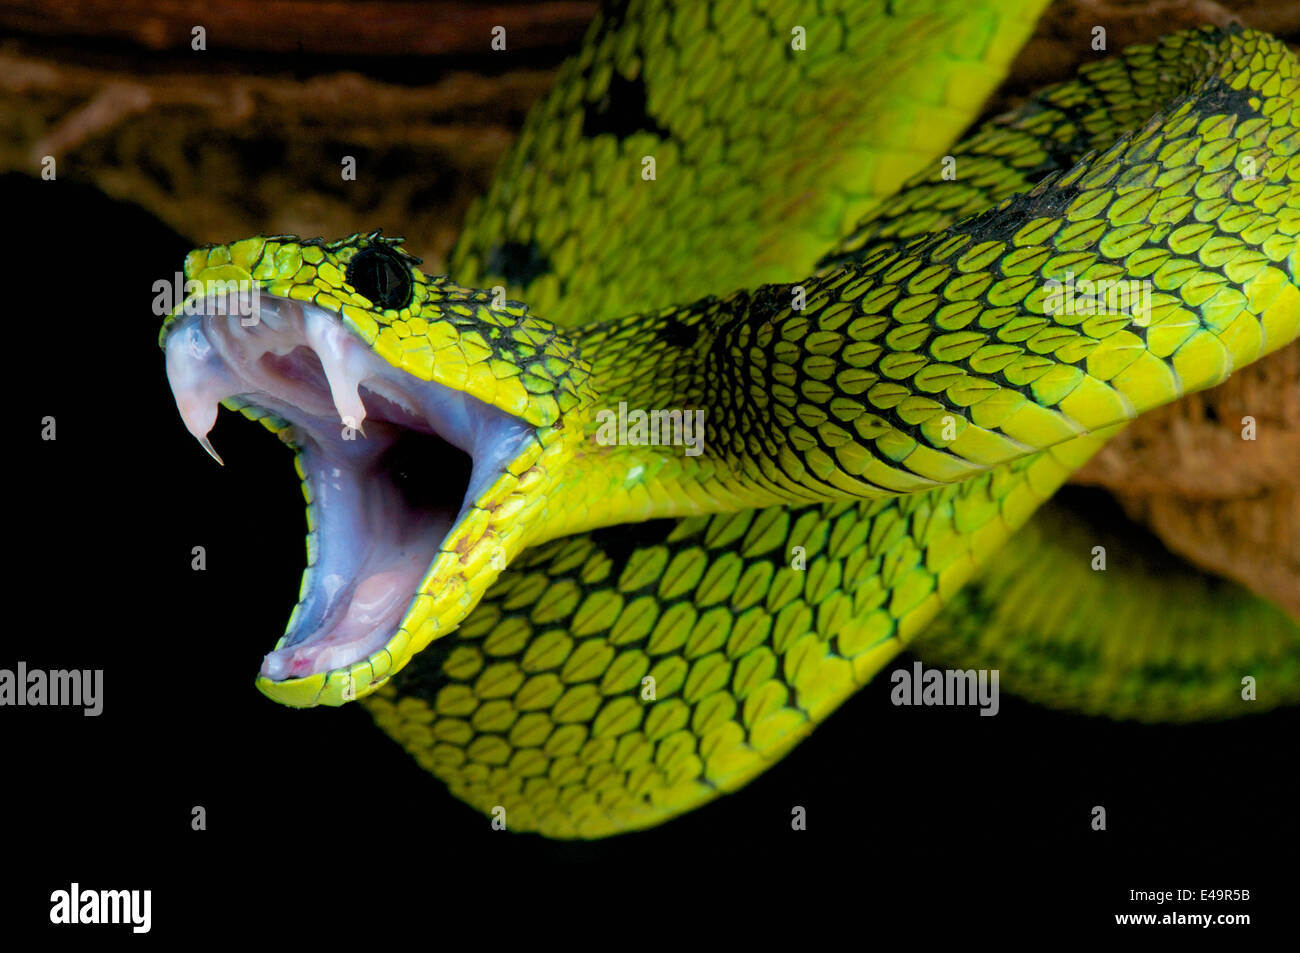 Snake attack ! - Stock Image